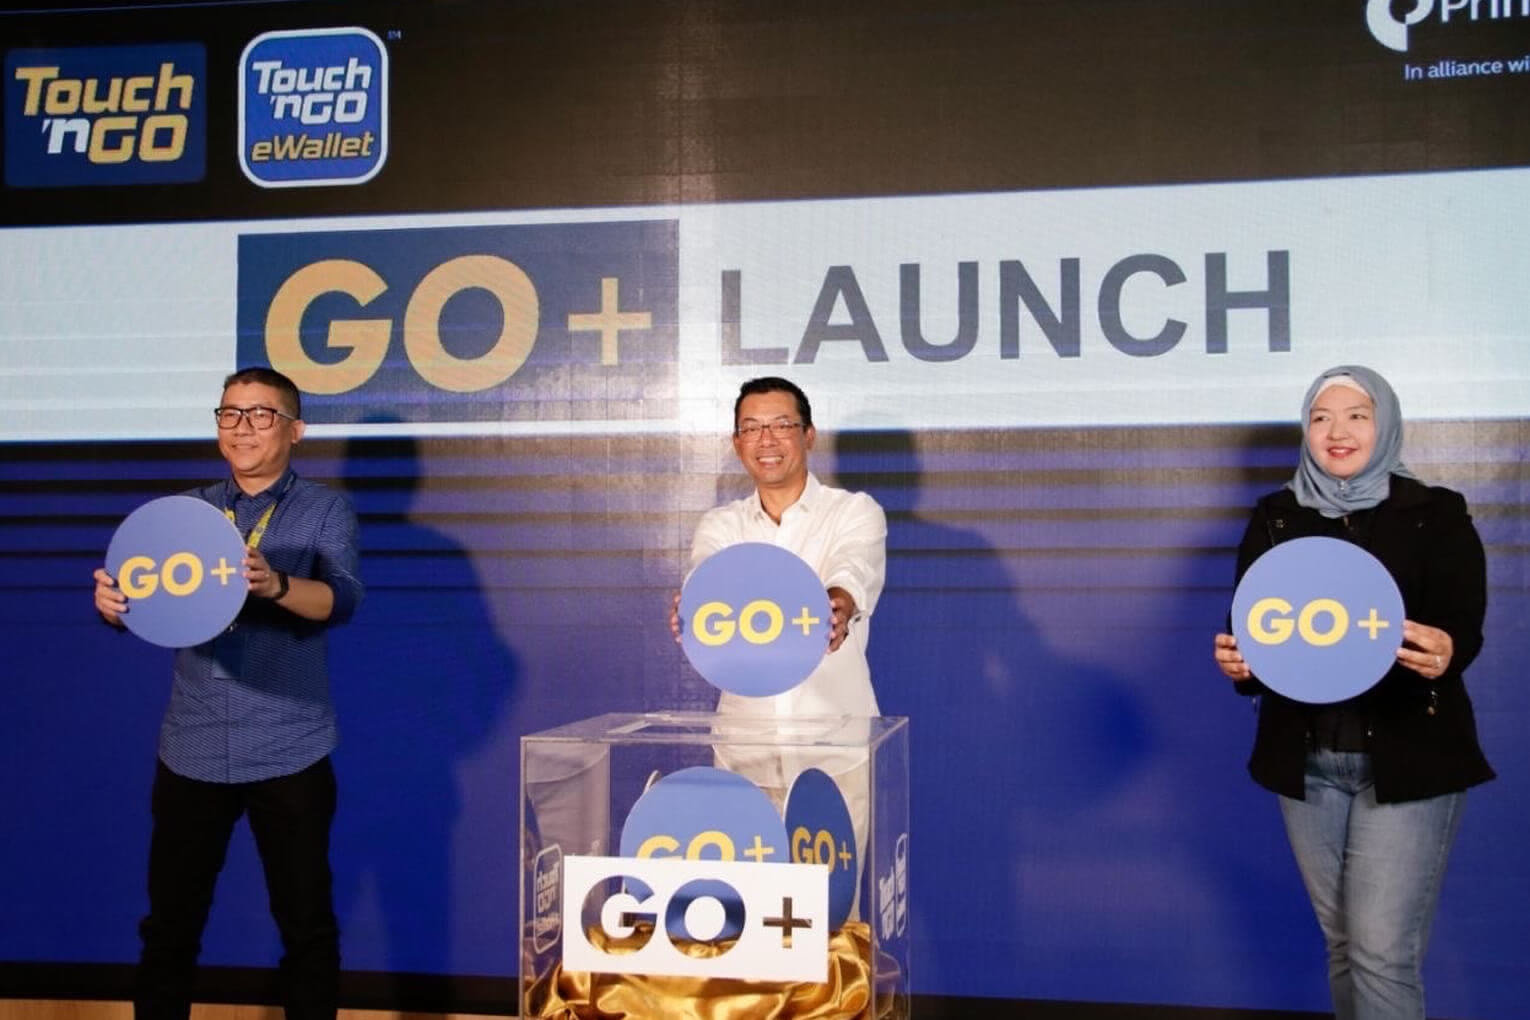 Touch 'n Go eWallet Enters the Mainstream Financial Services Sector